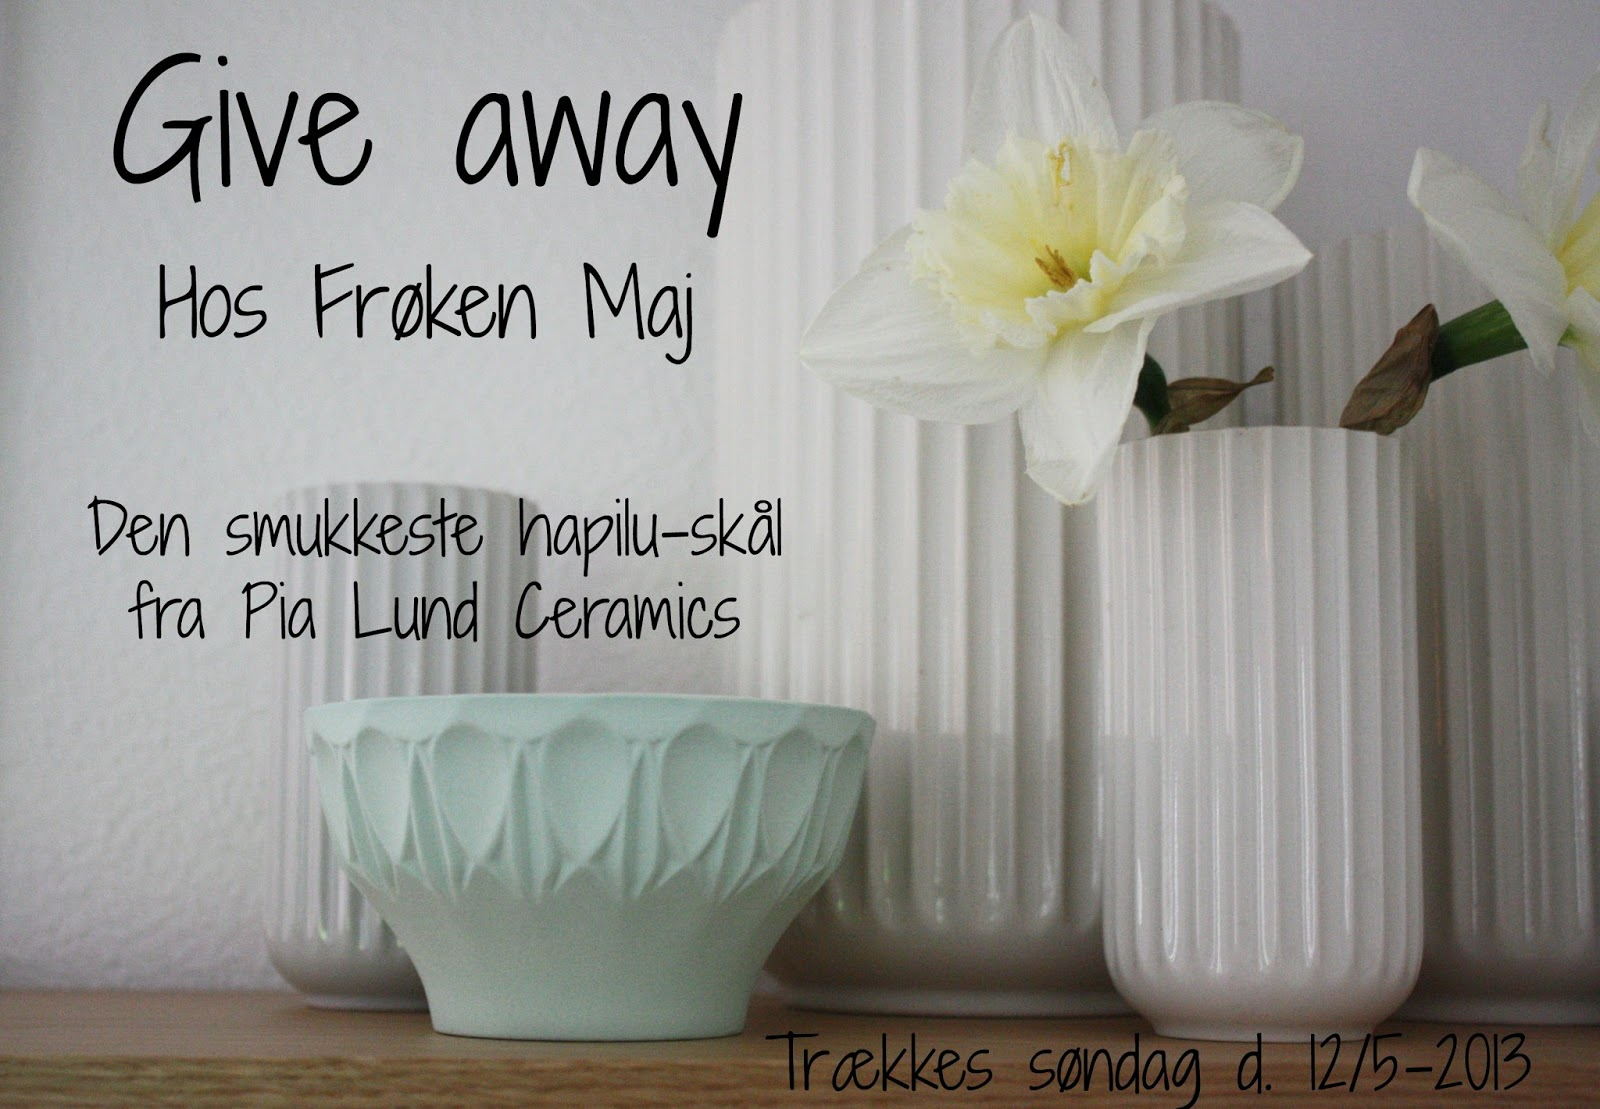 Give Away hos Frken Maj